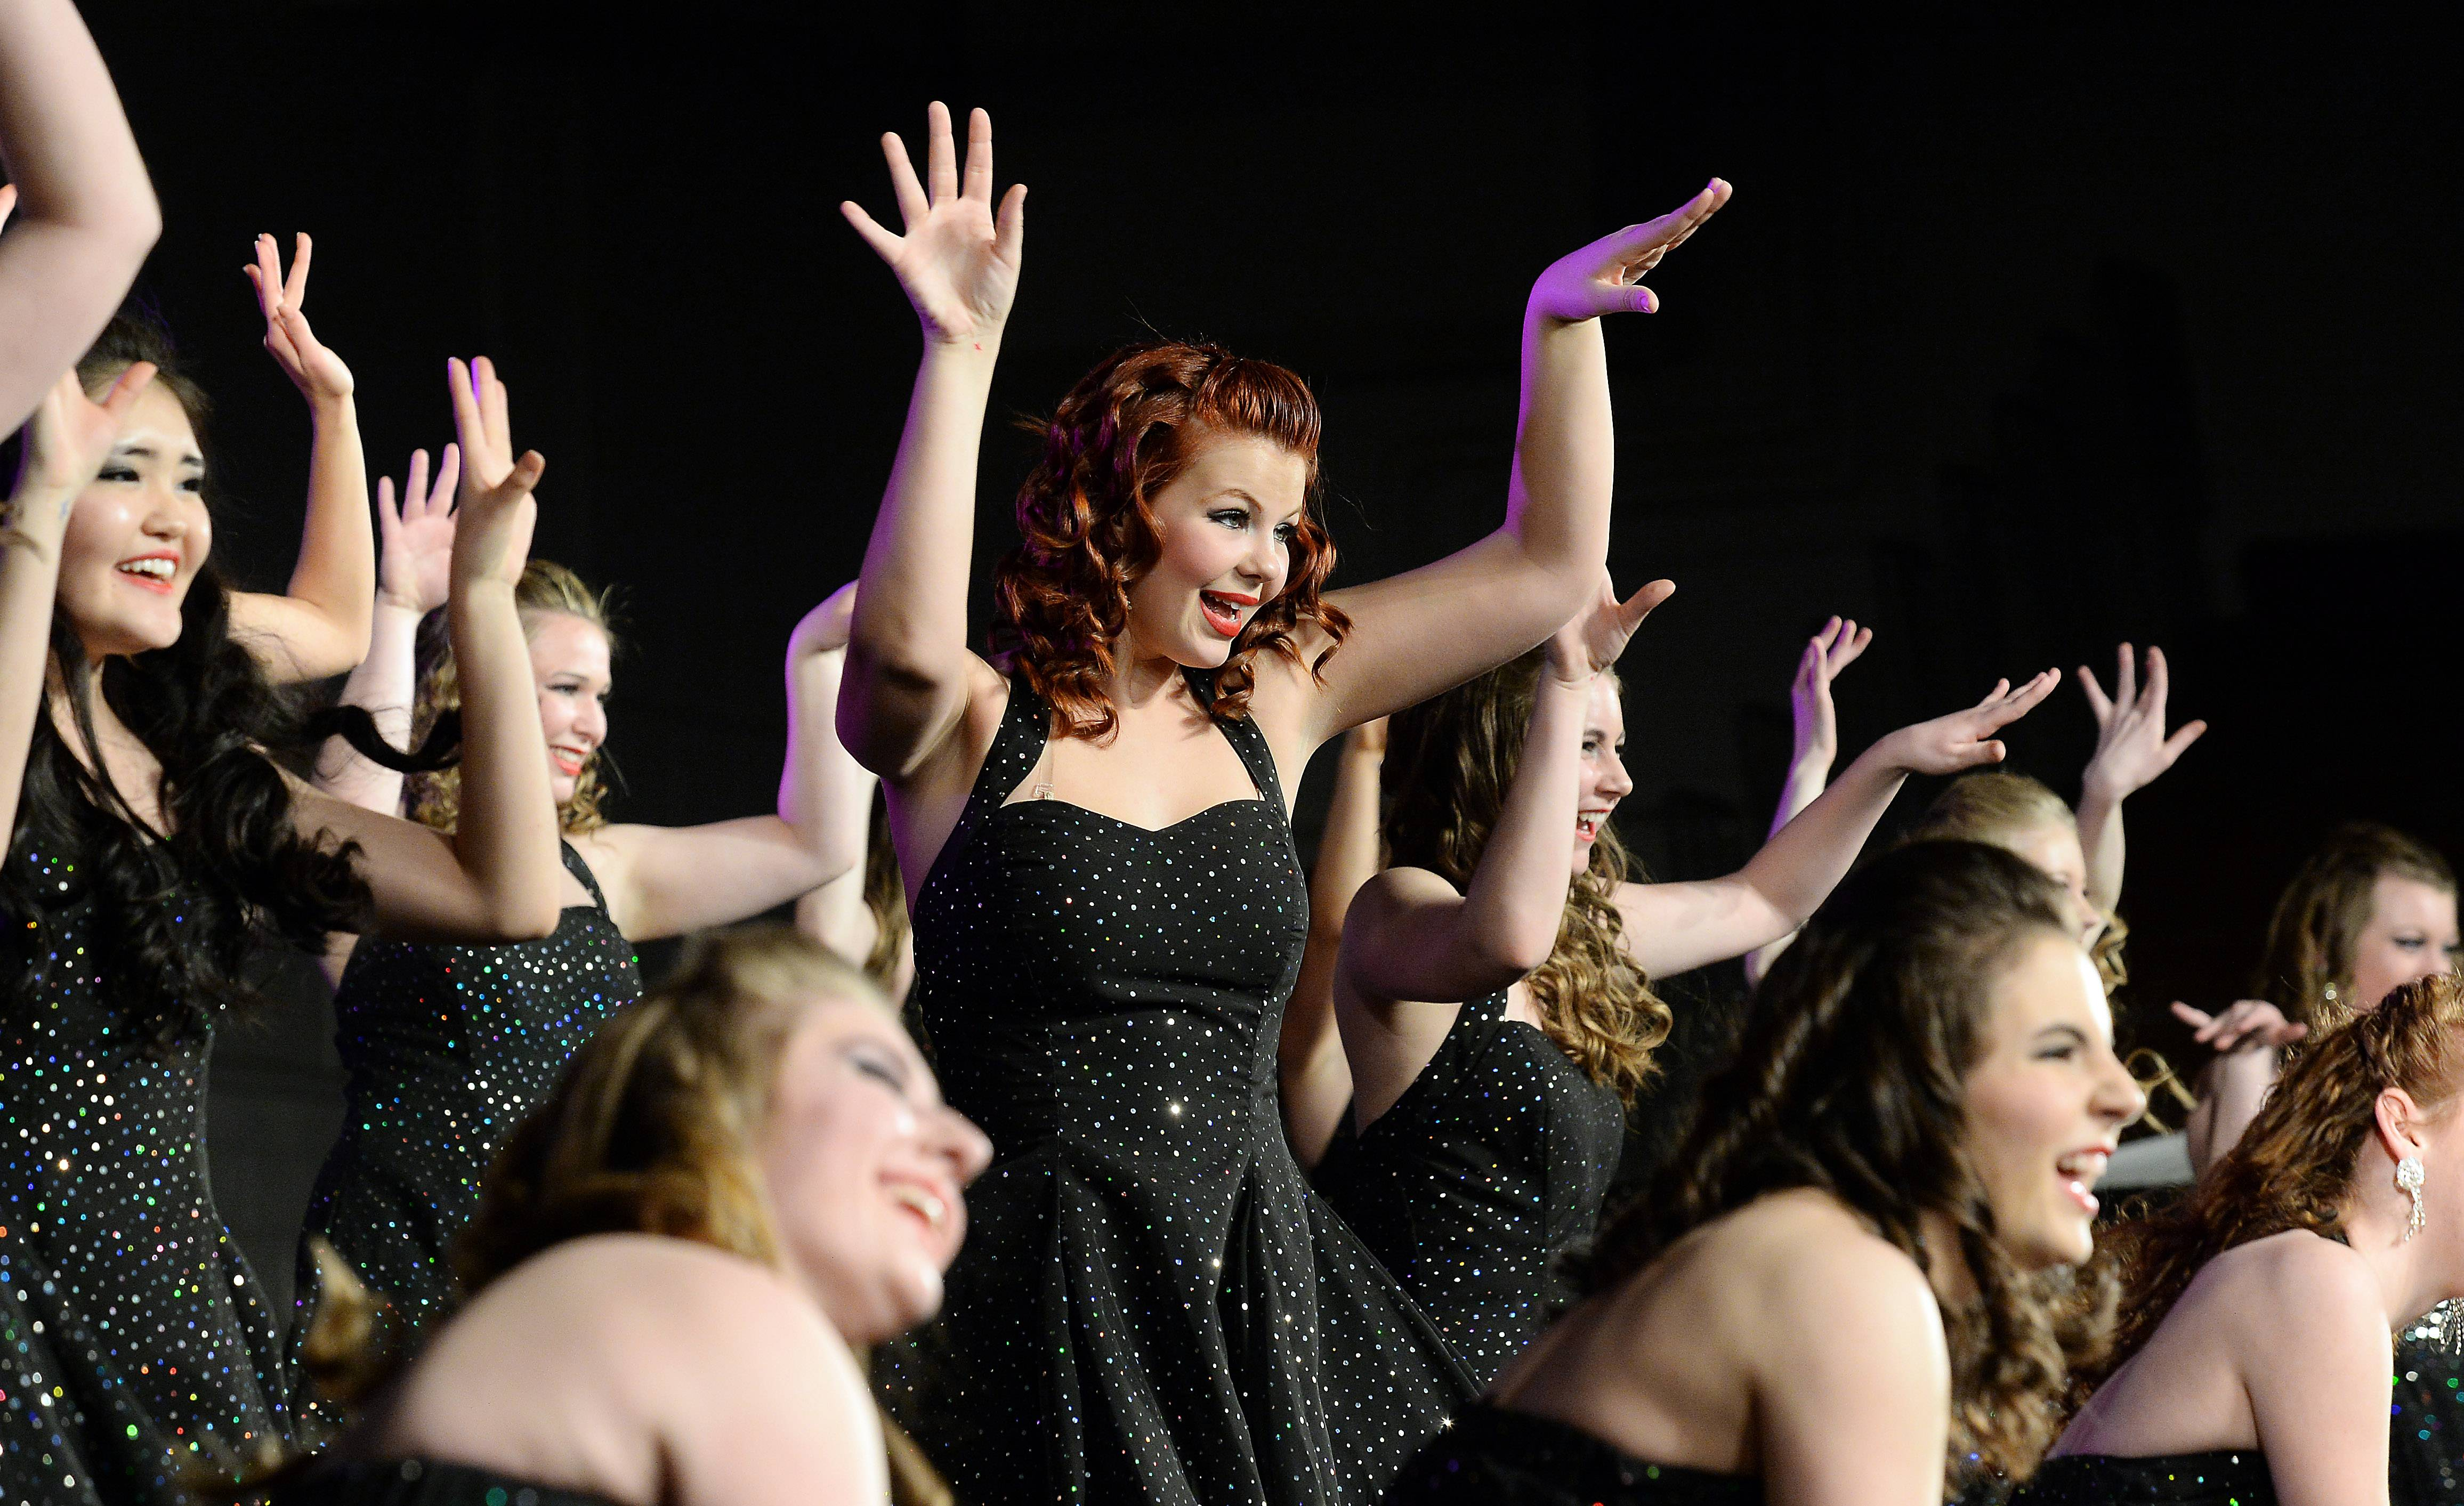 Meghan Rose sings with Company, the Prospect High School show choir, during the Chicagoland Showcase show choir competition Saturday in Arlington Heights.